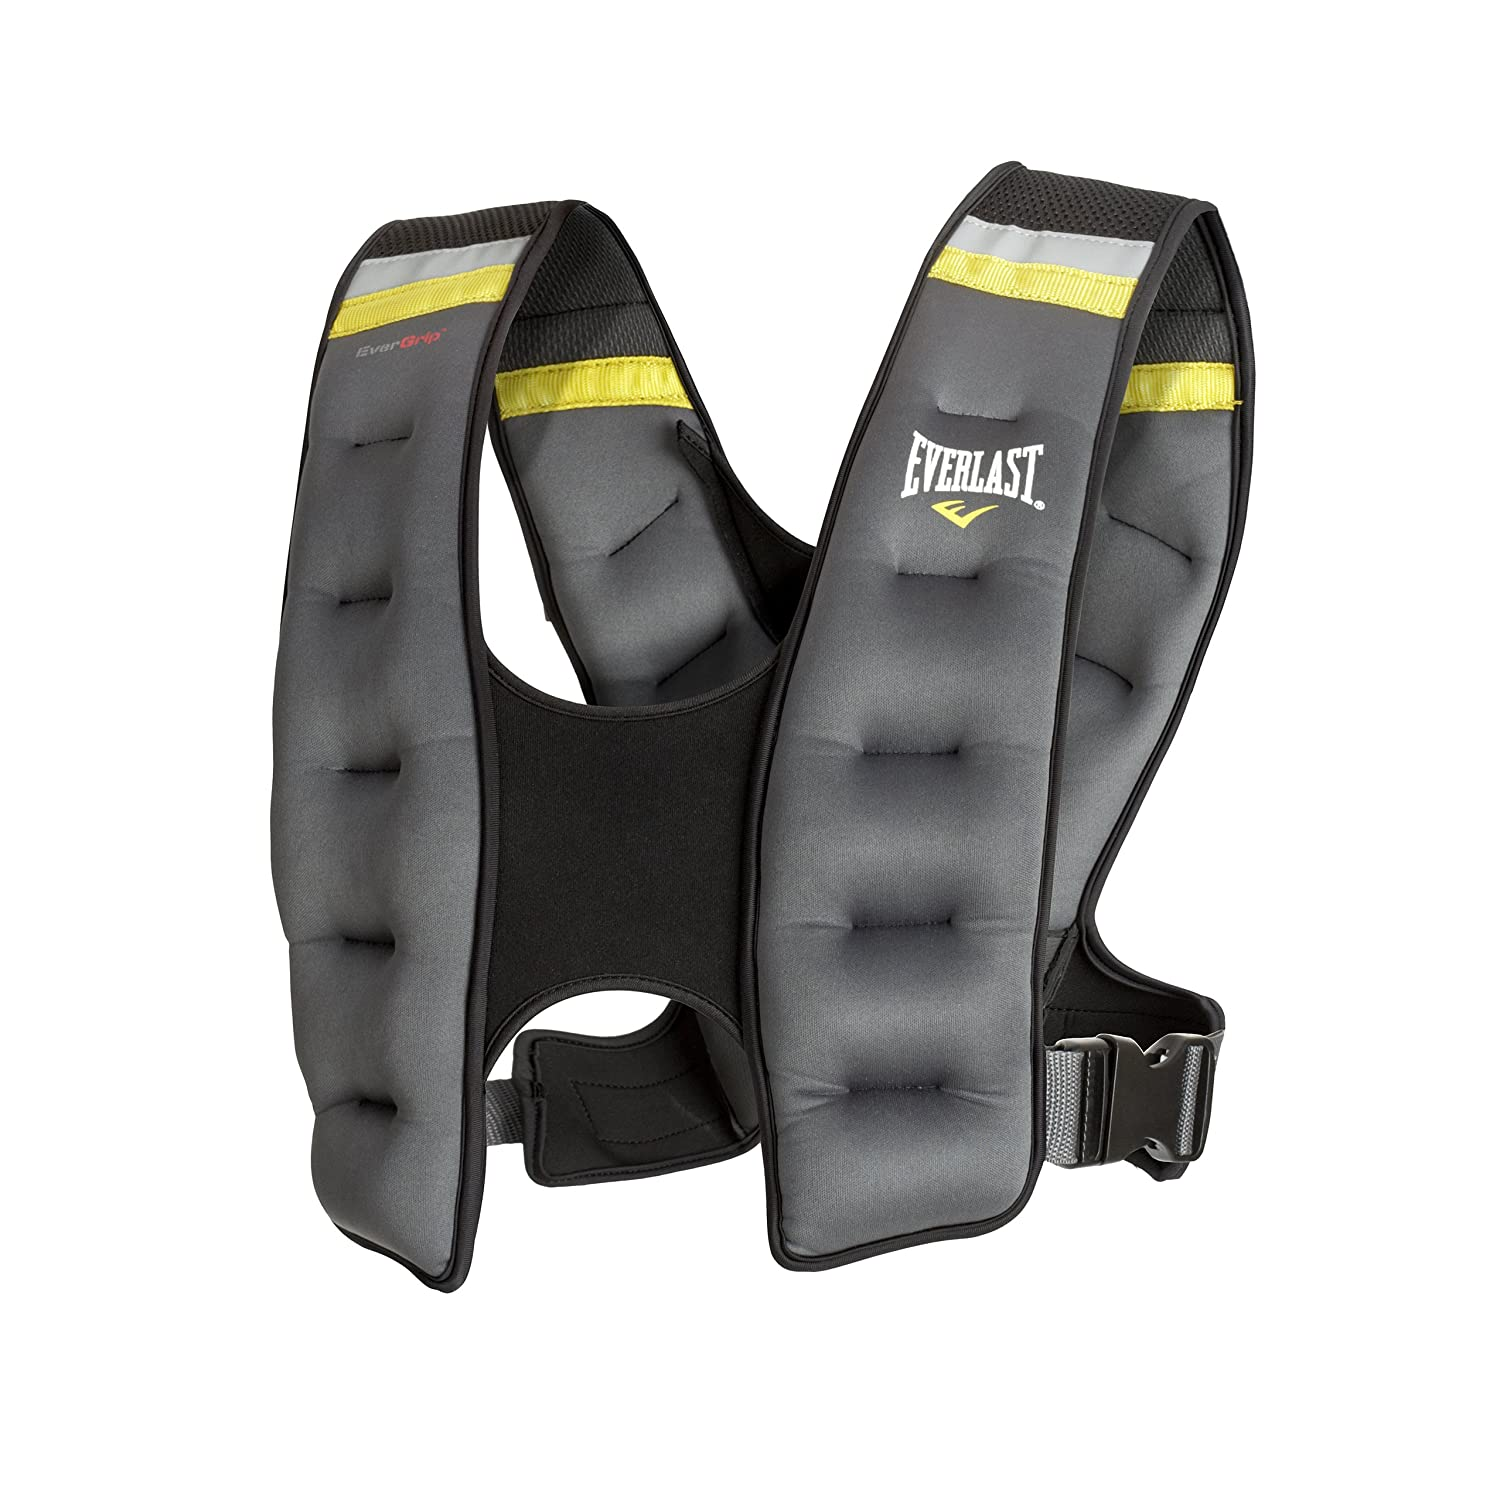 weighted vest everlast workout fitness weights exercise strength